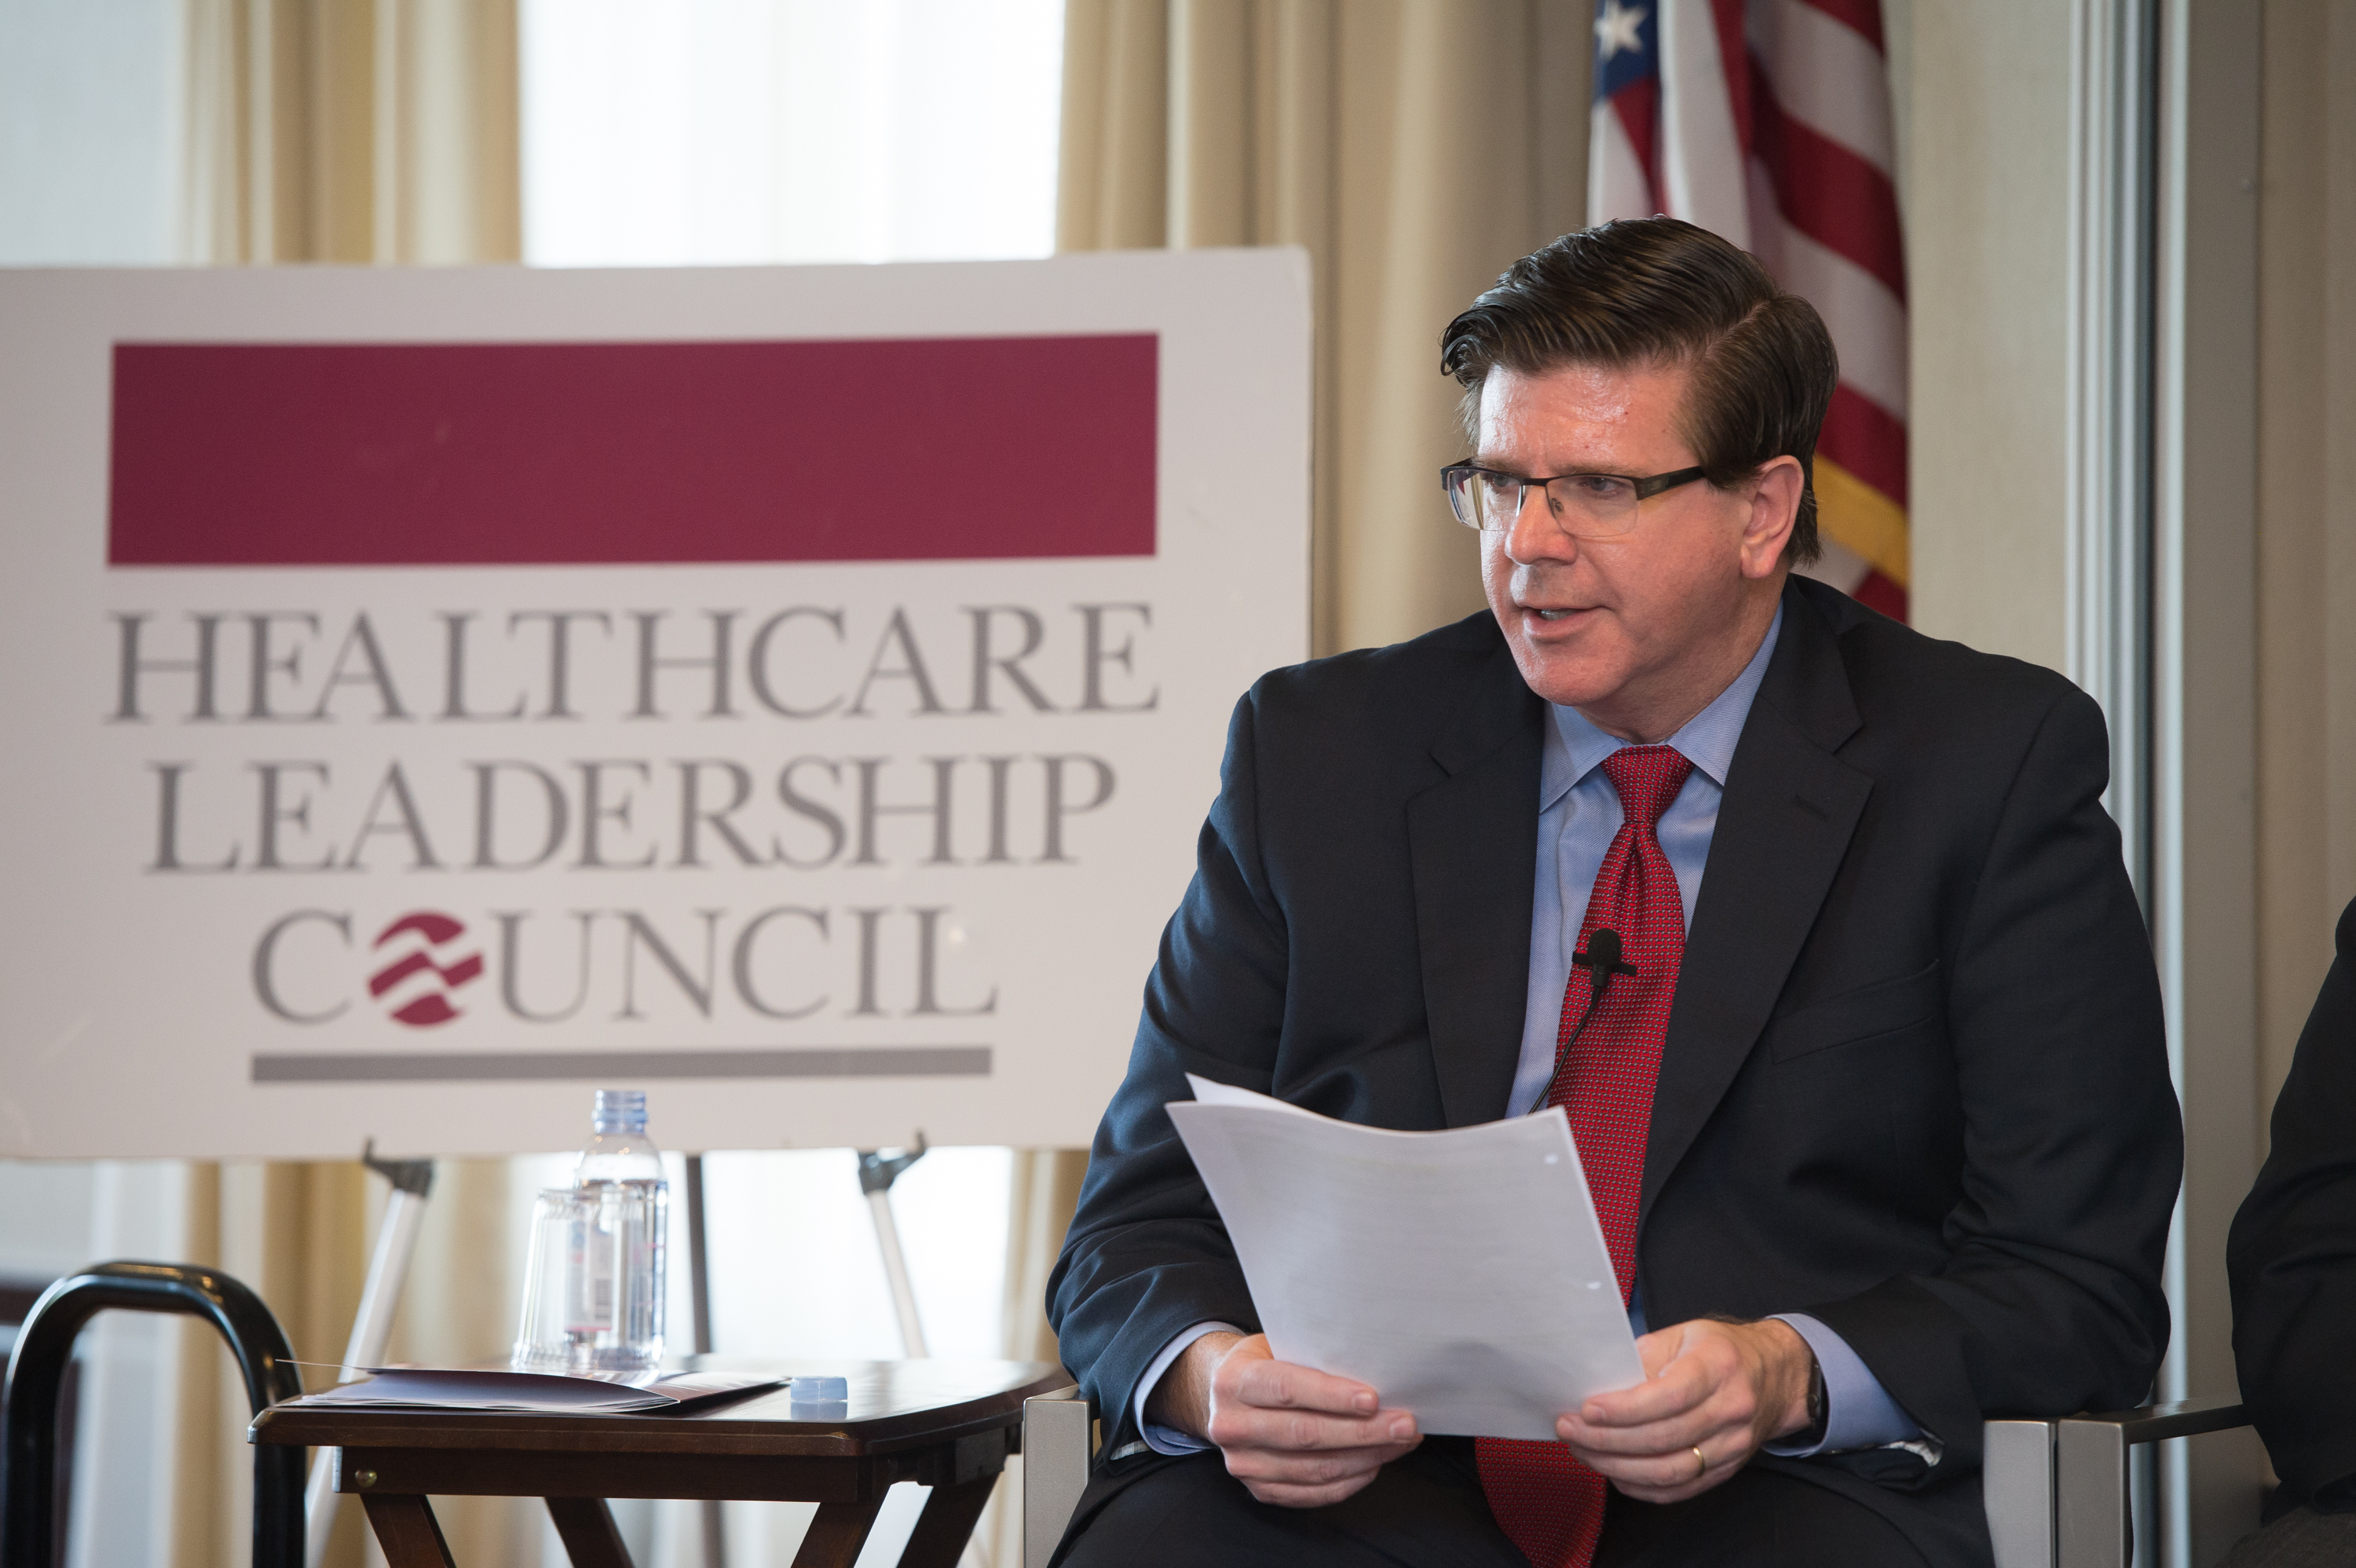 WASHINGTON, DC - APRIL 20: Healthcare Leadership Council panel discussion on interoperability on April 20, 2017 in Washington, DC. (Photo by Kate Patterson)